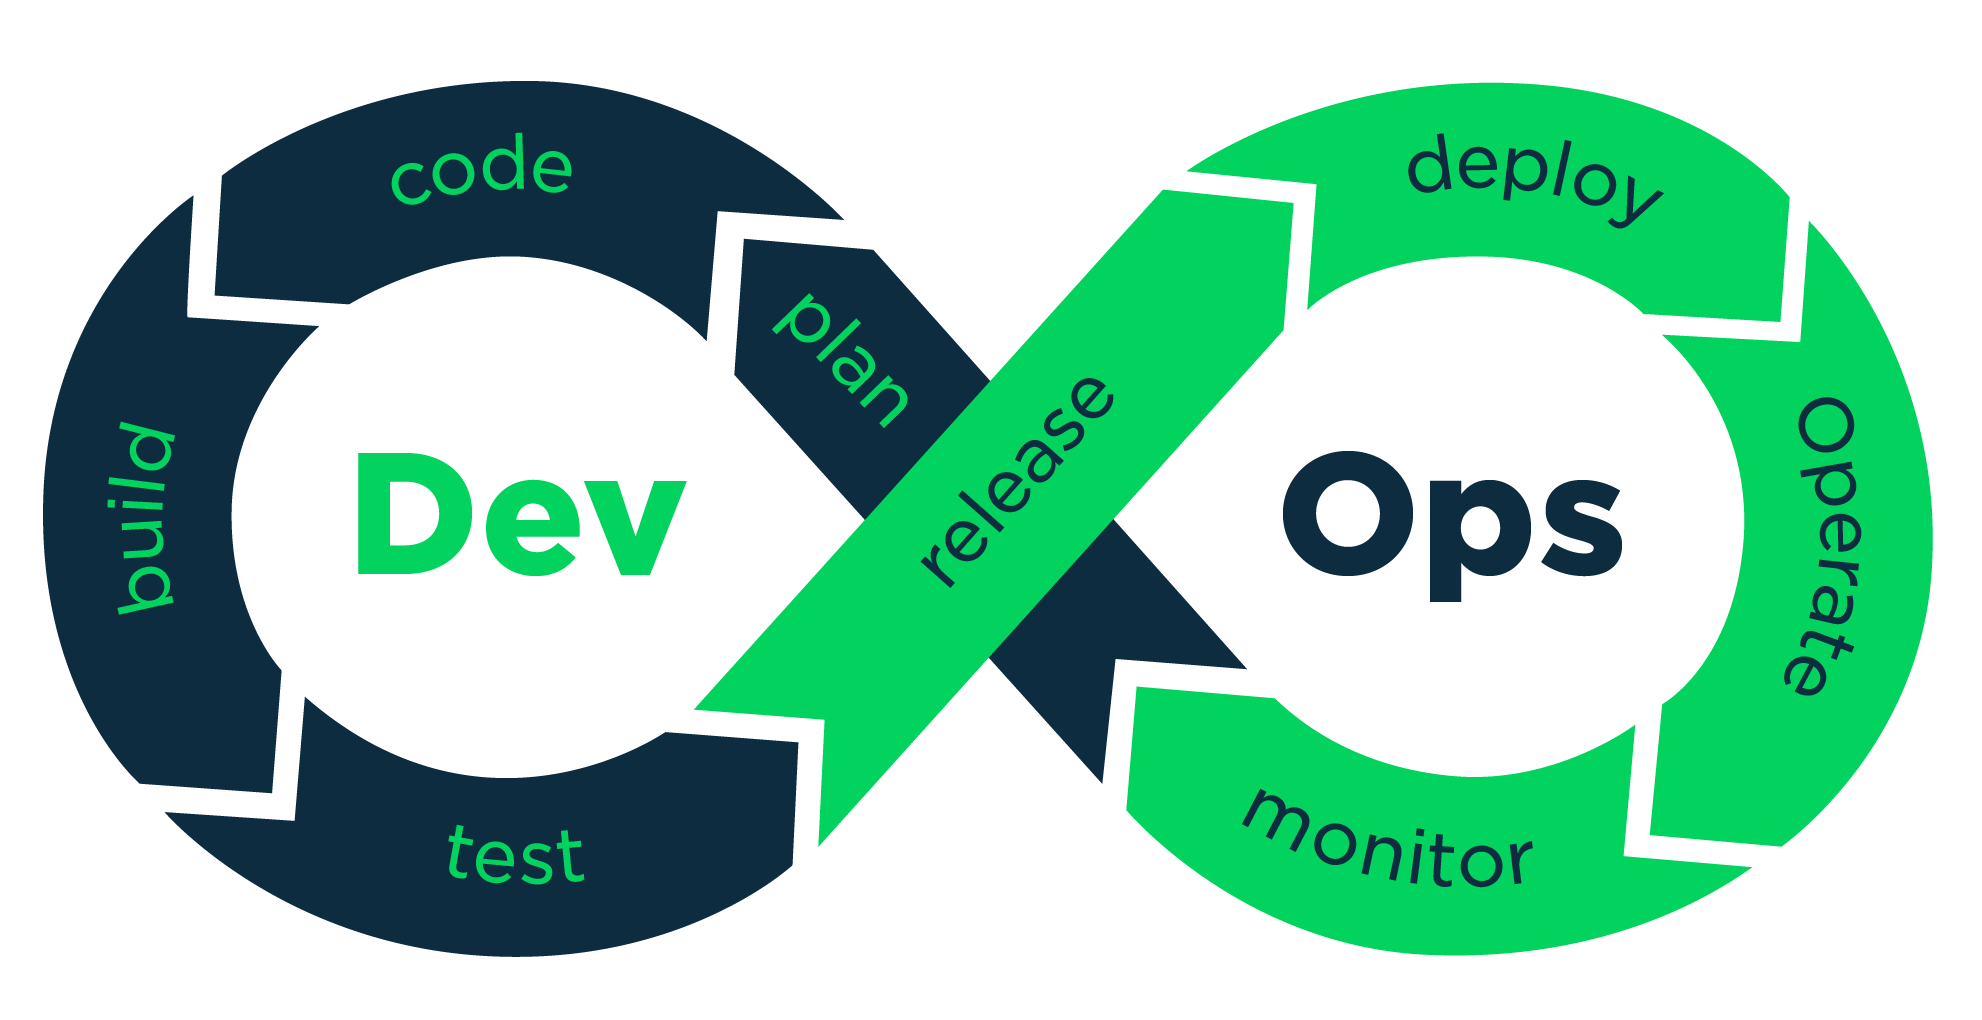 At its core, DevOps is combining development and operations into one cohesive and continuous process. By doing this, both teams are now on the same page at all times. This breaks down barriers and eliminates department bottlenecks.